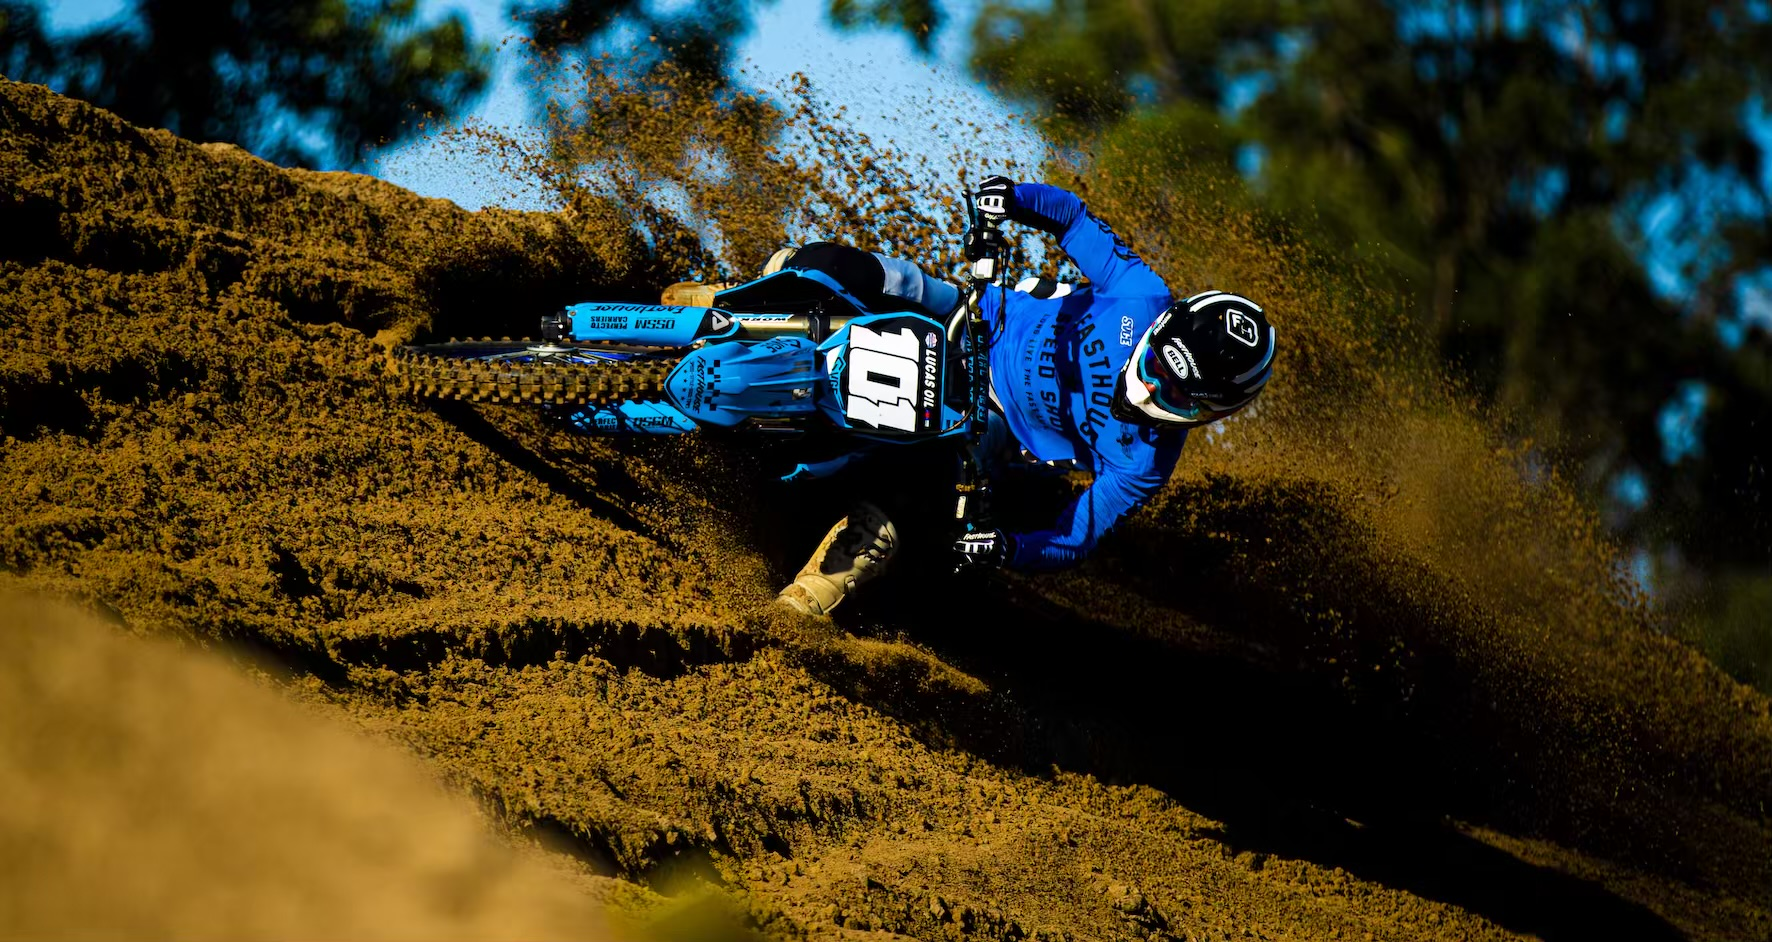 Grant Frerichs racing Round 2 of the 2021 South African National Motocross Championship